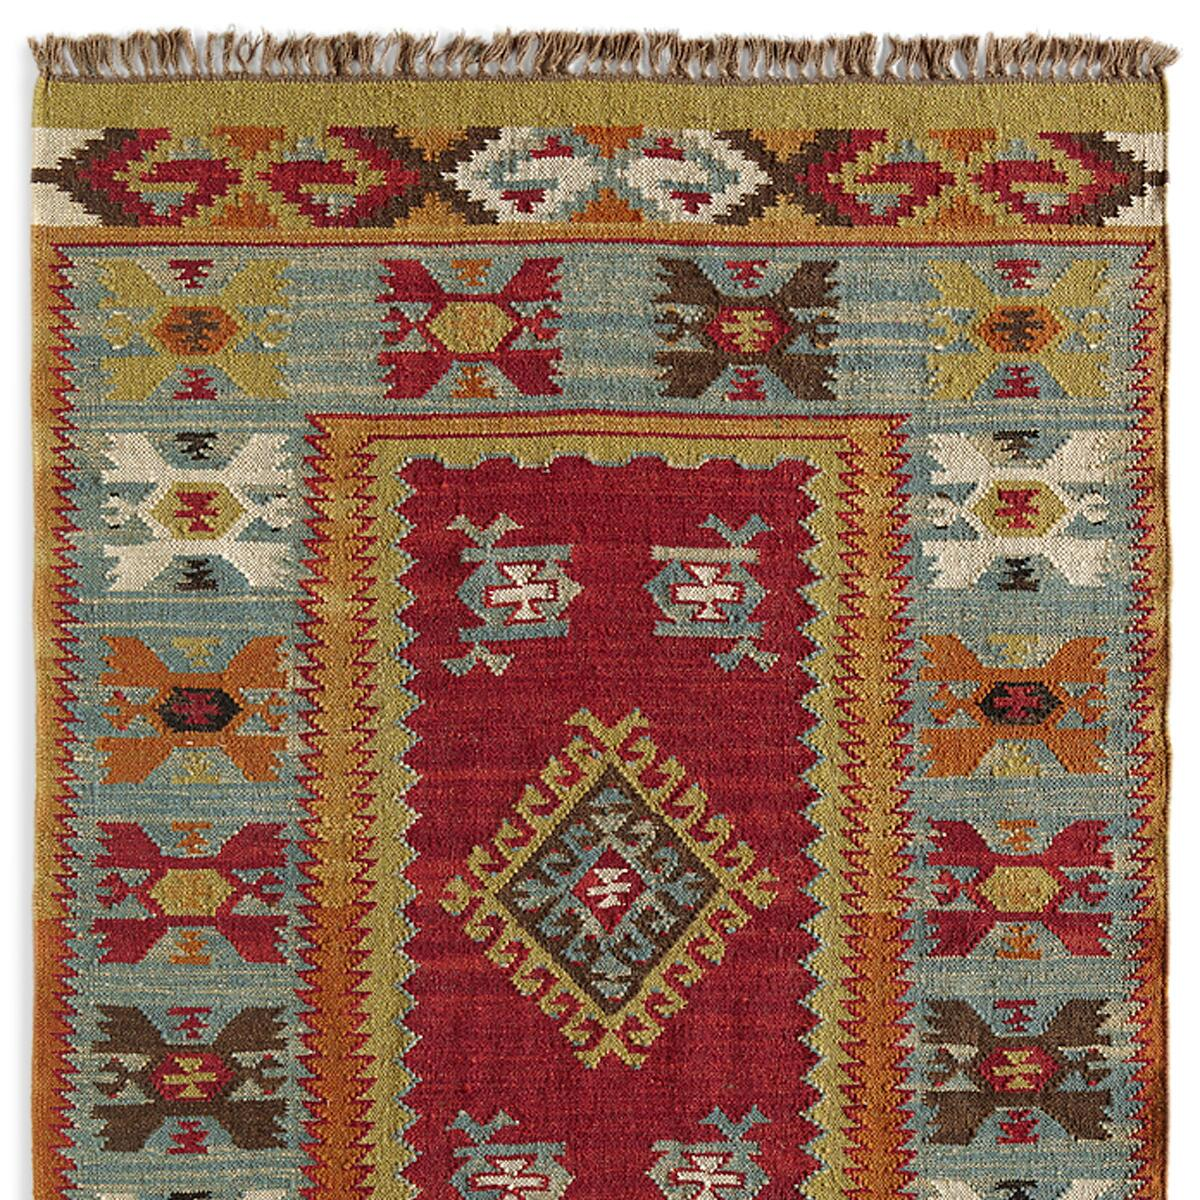 SUMMERHOUSE KILIM RUG, LARGE: View 1